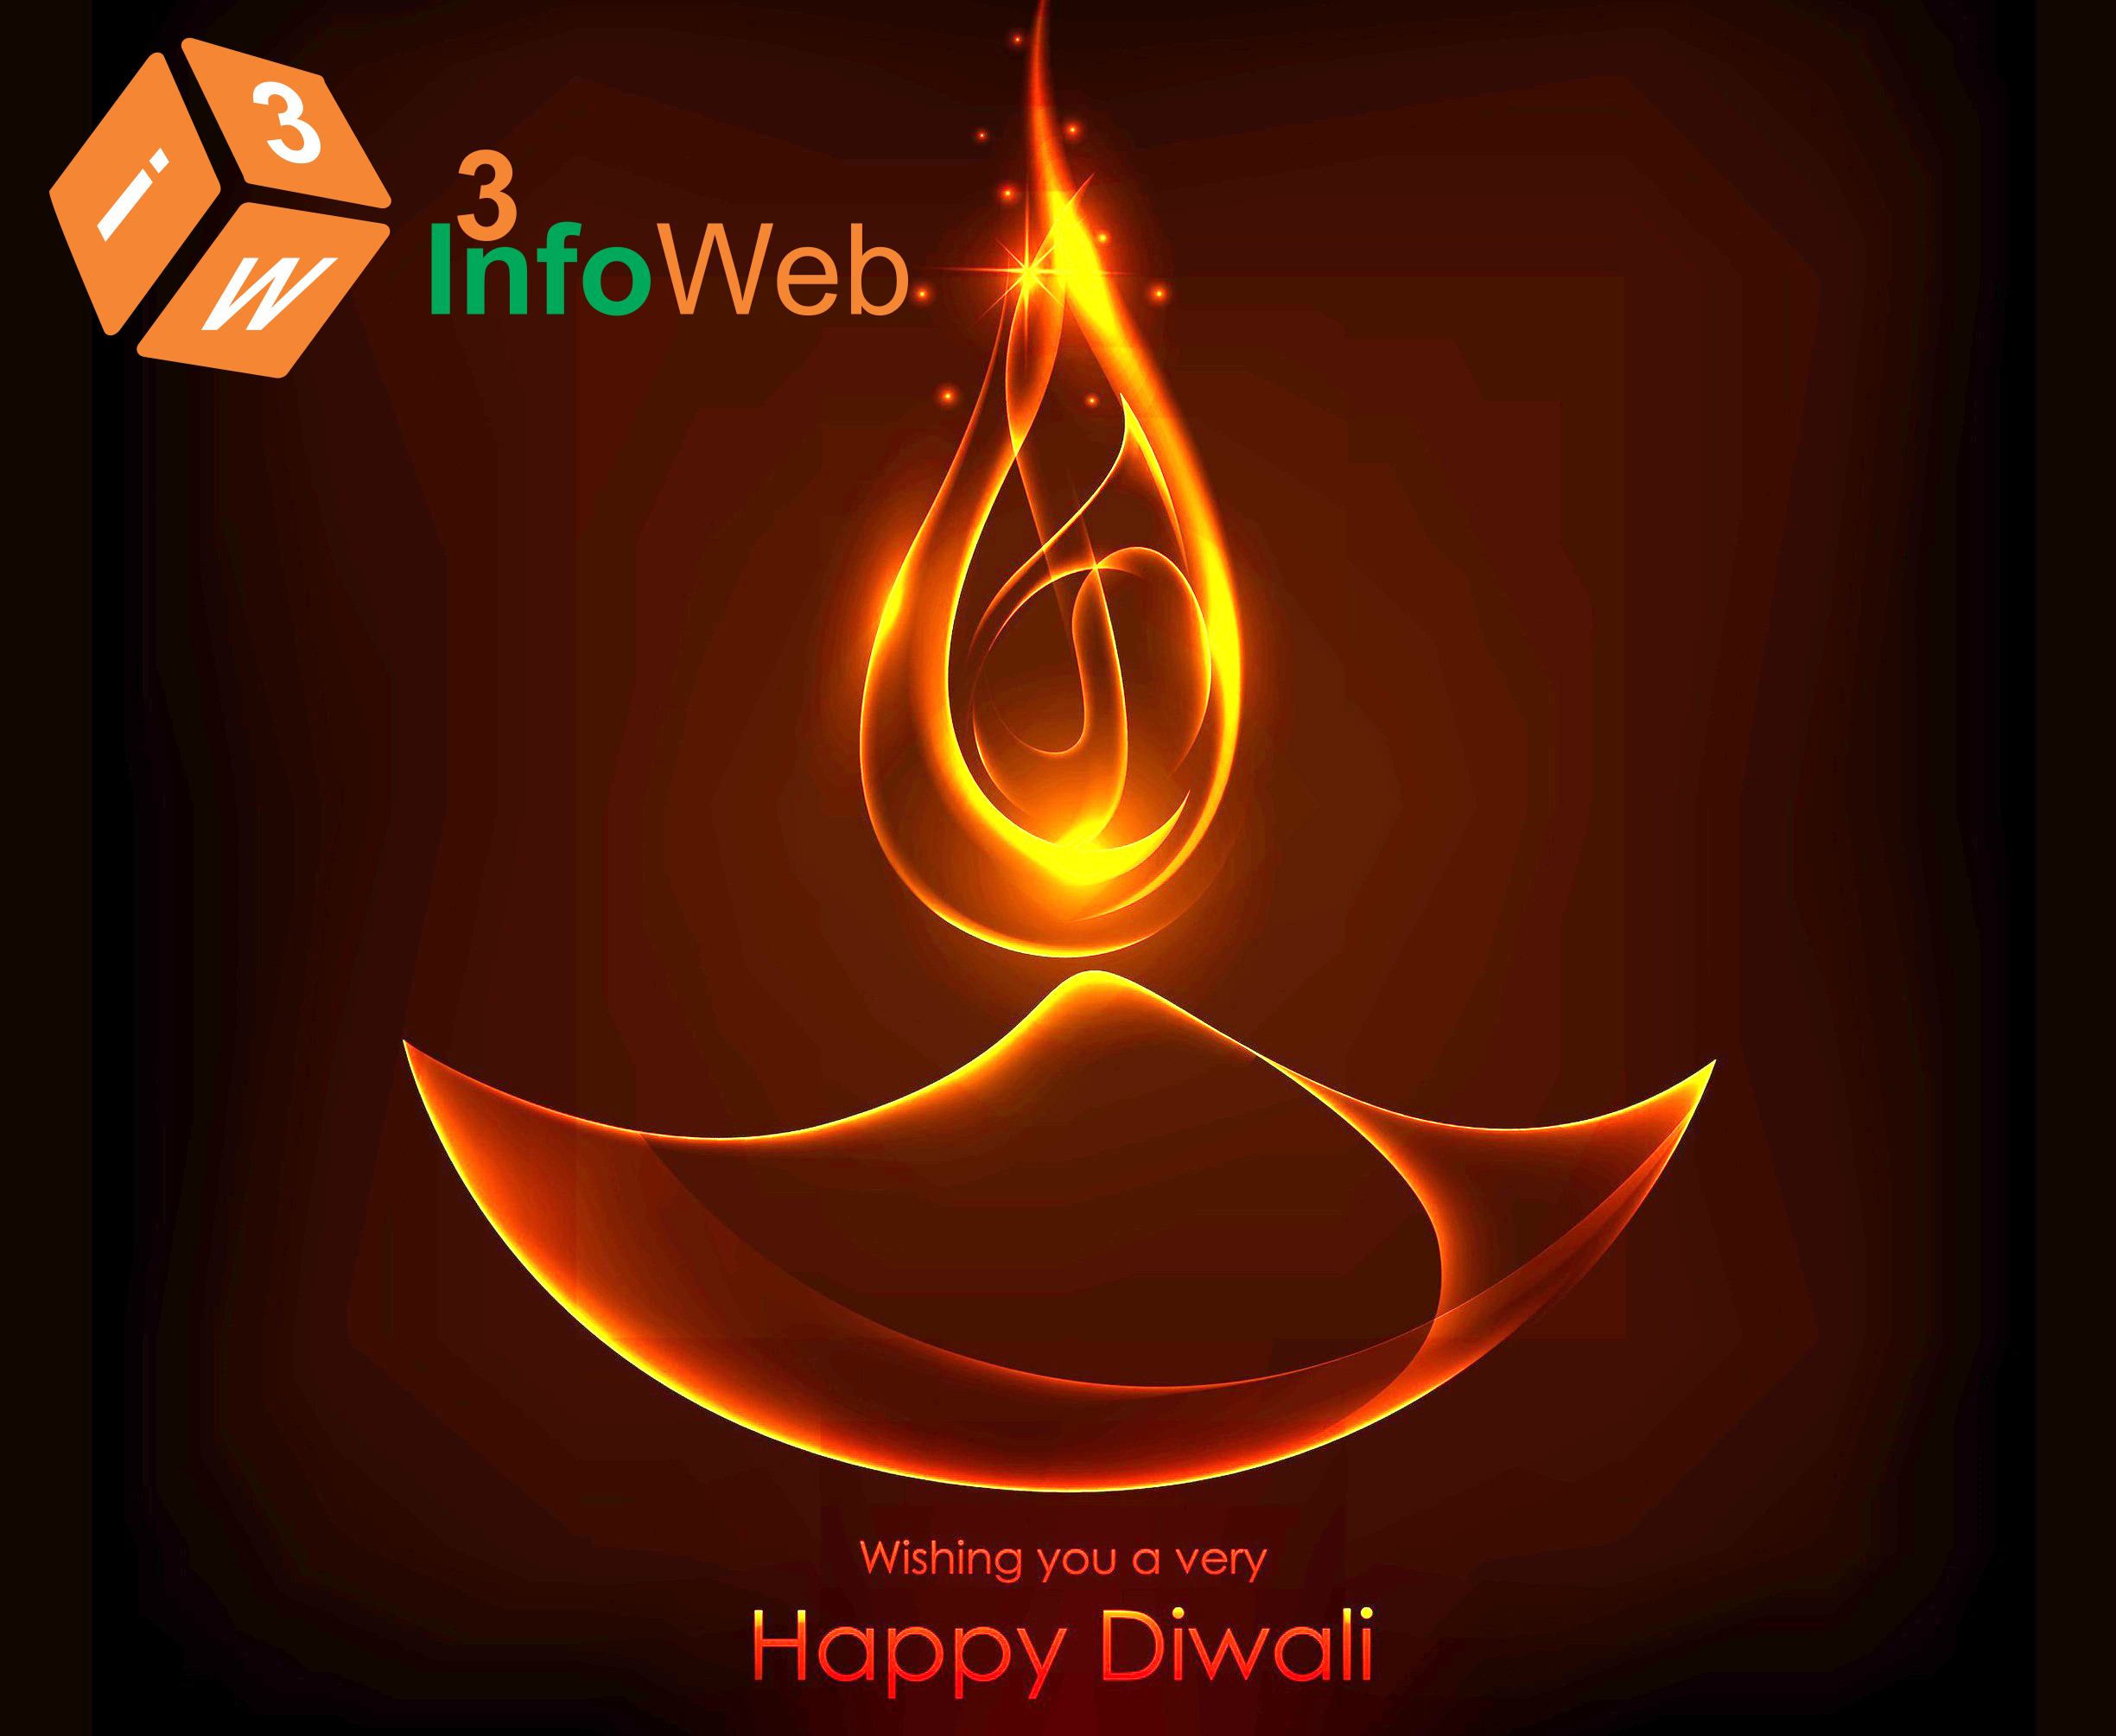 3infoweb Wishes Everyone To Celebrate The Festival Of Diwali With